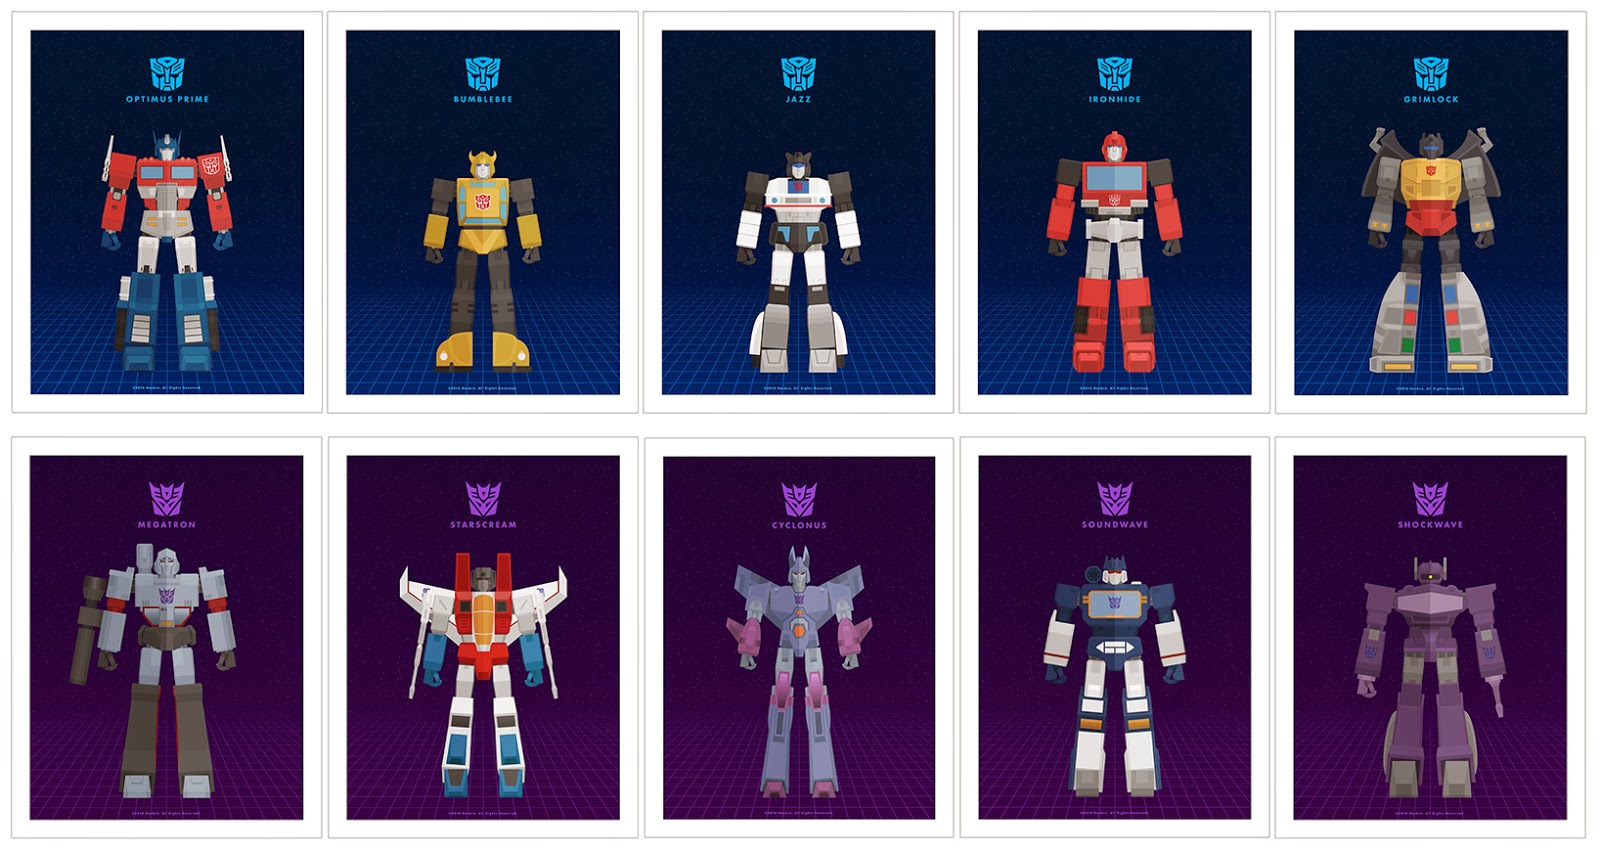 New York Comic Con 2014 Exclusive Transformers Generation 1 Print Set by Thong Le (Weaponix)